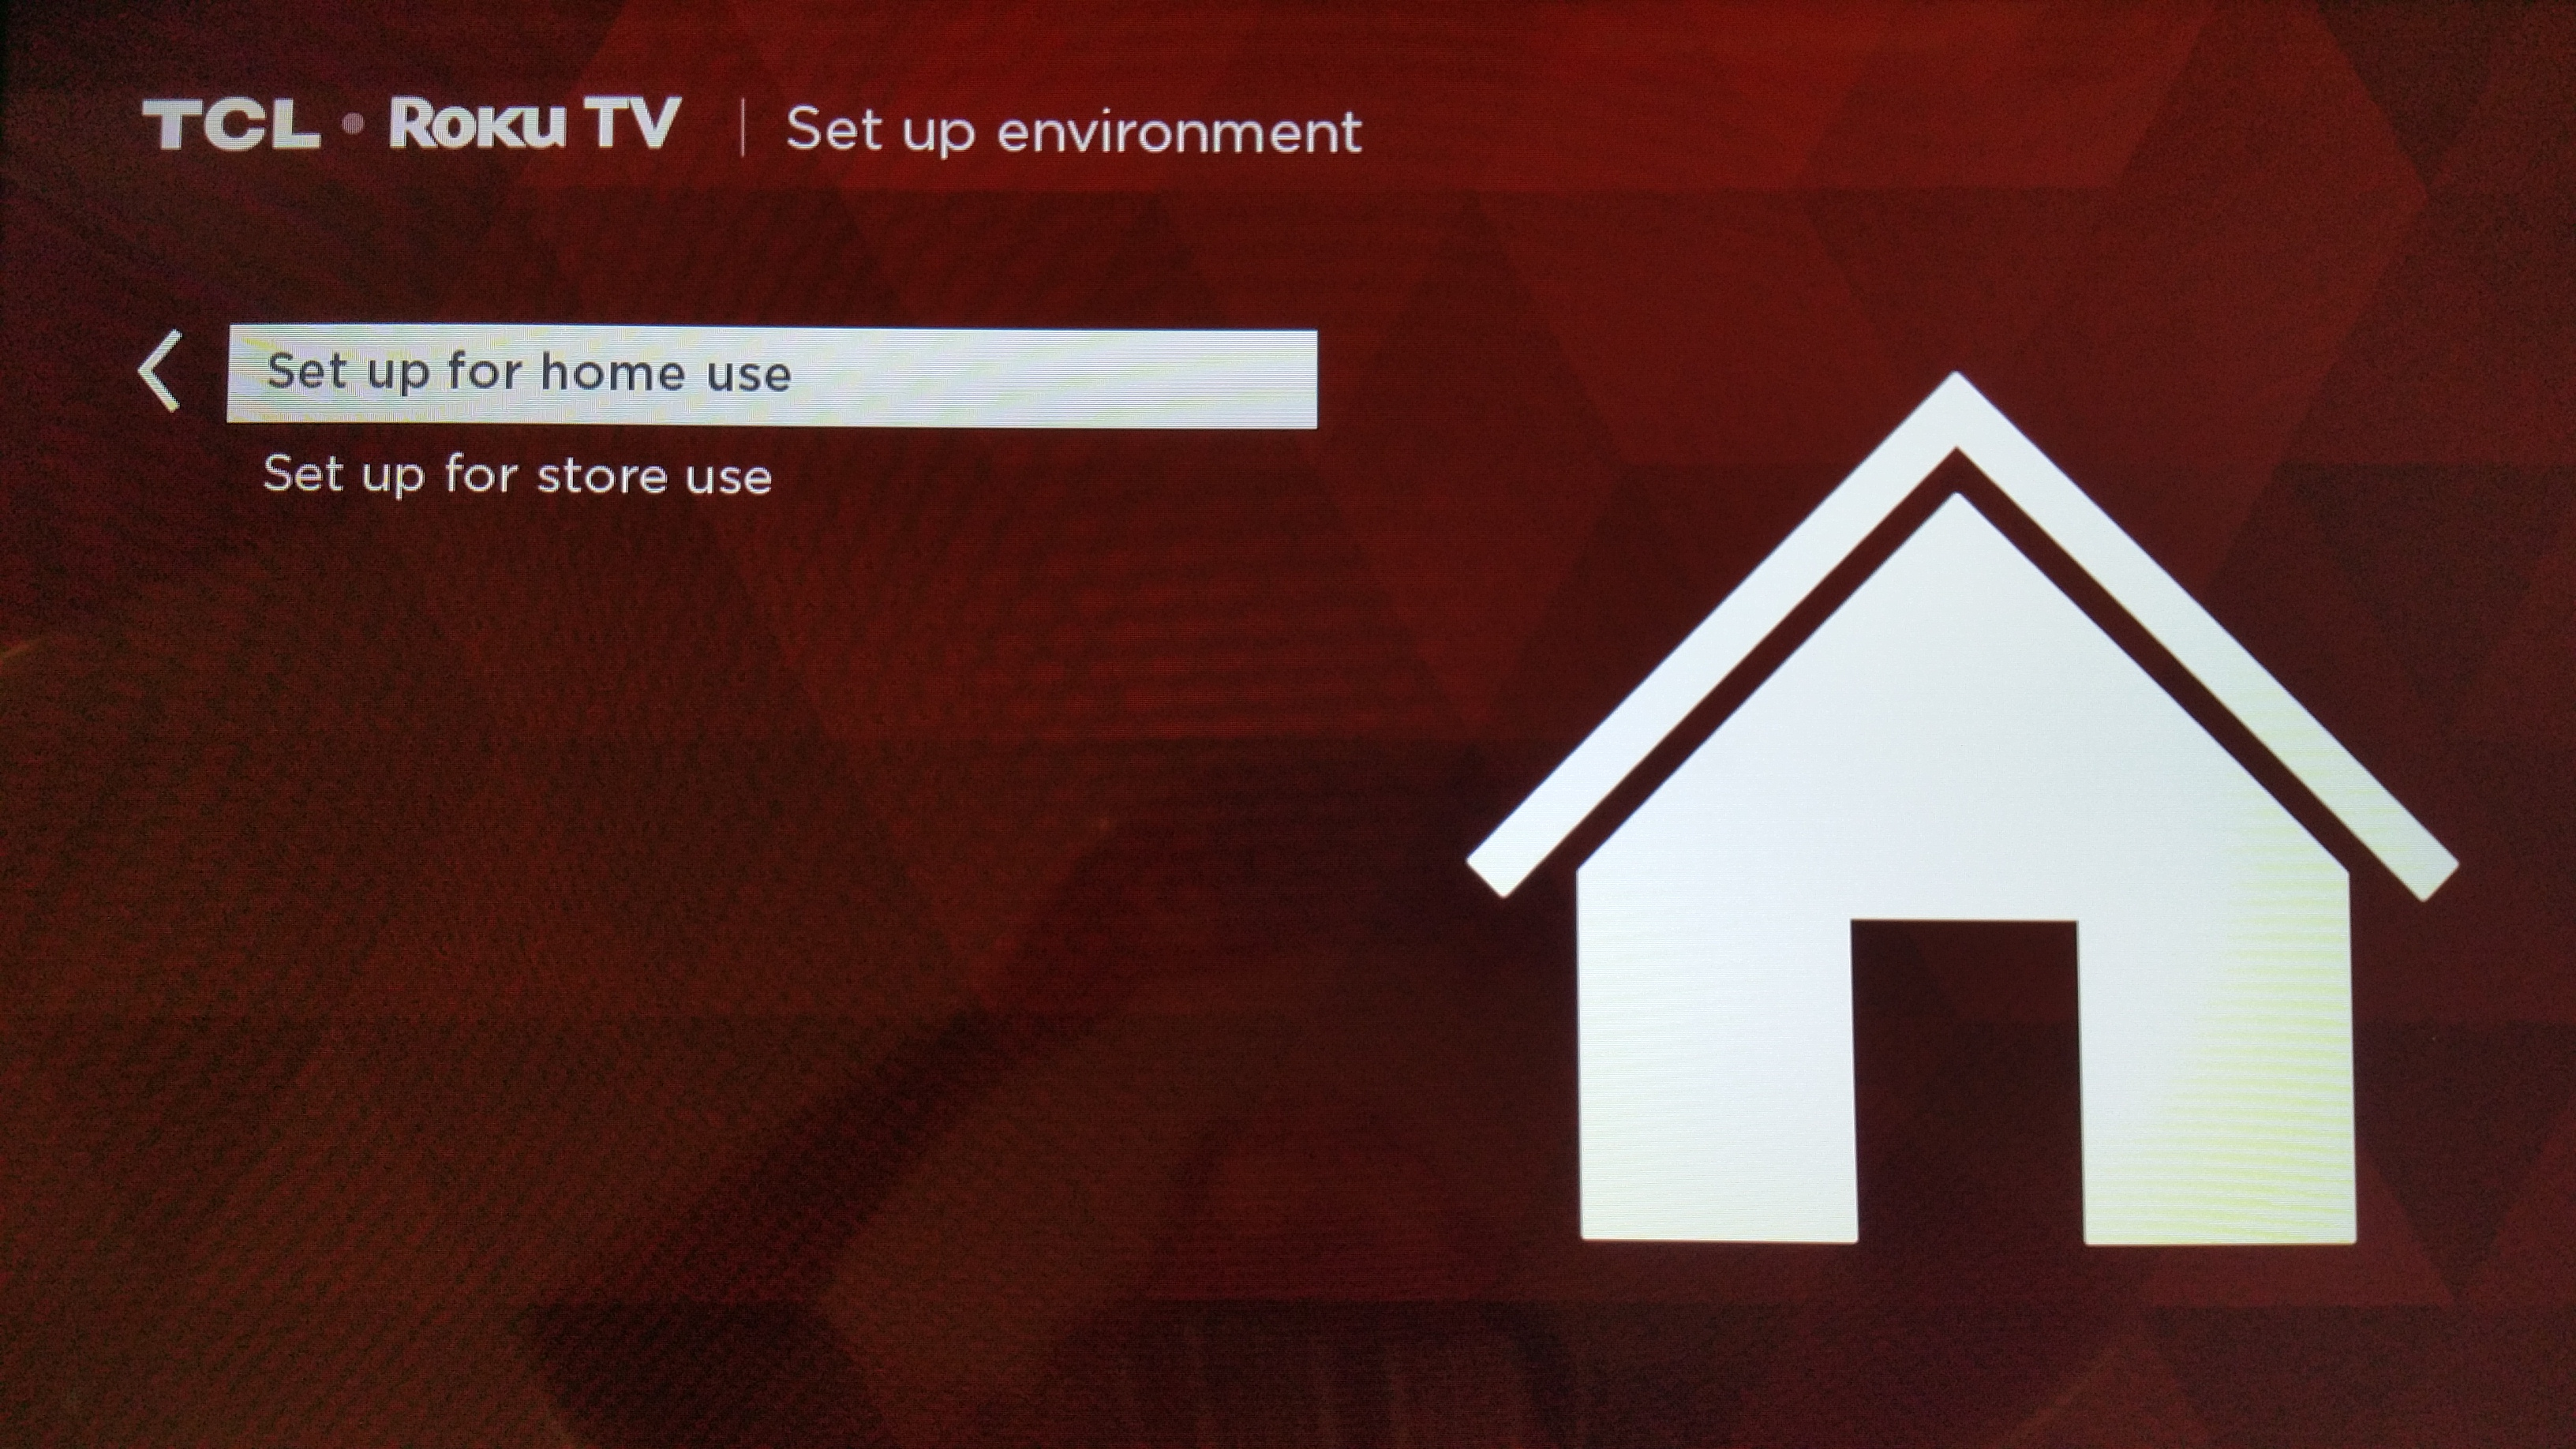 TCLUSA — Turning Off the Roku Features of Your TCL Smart TV